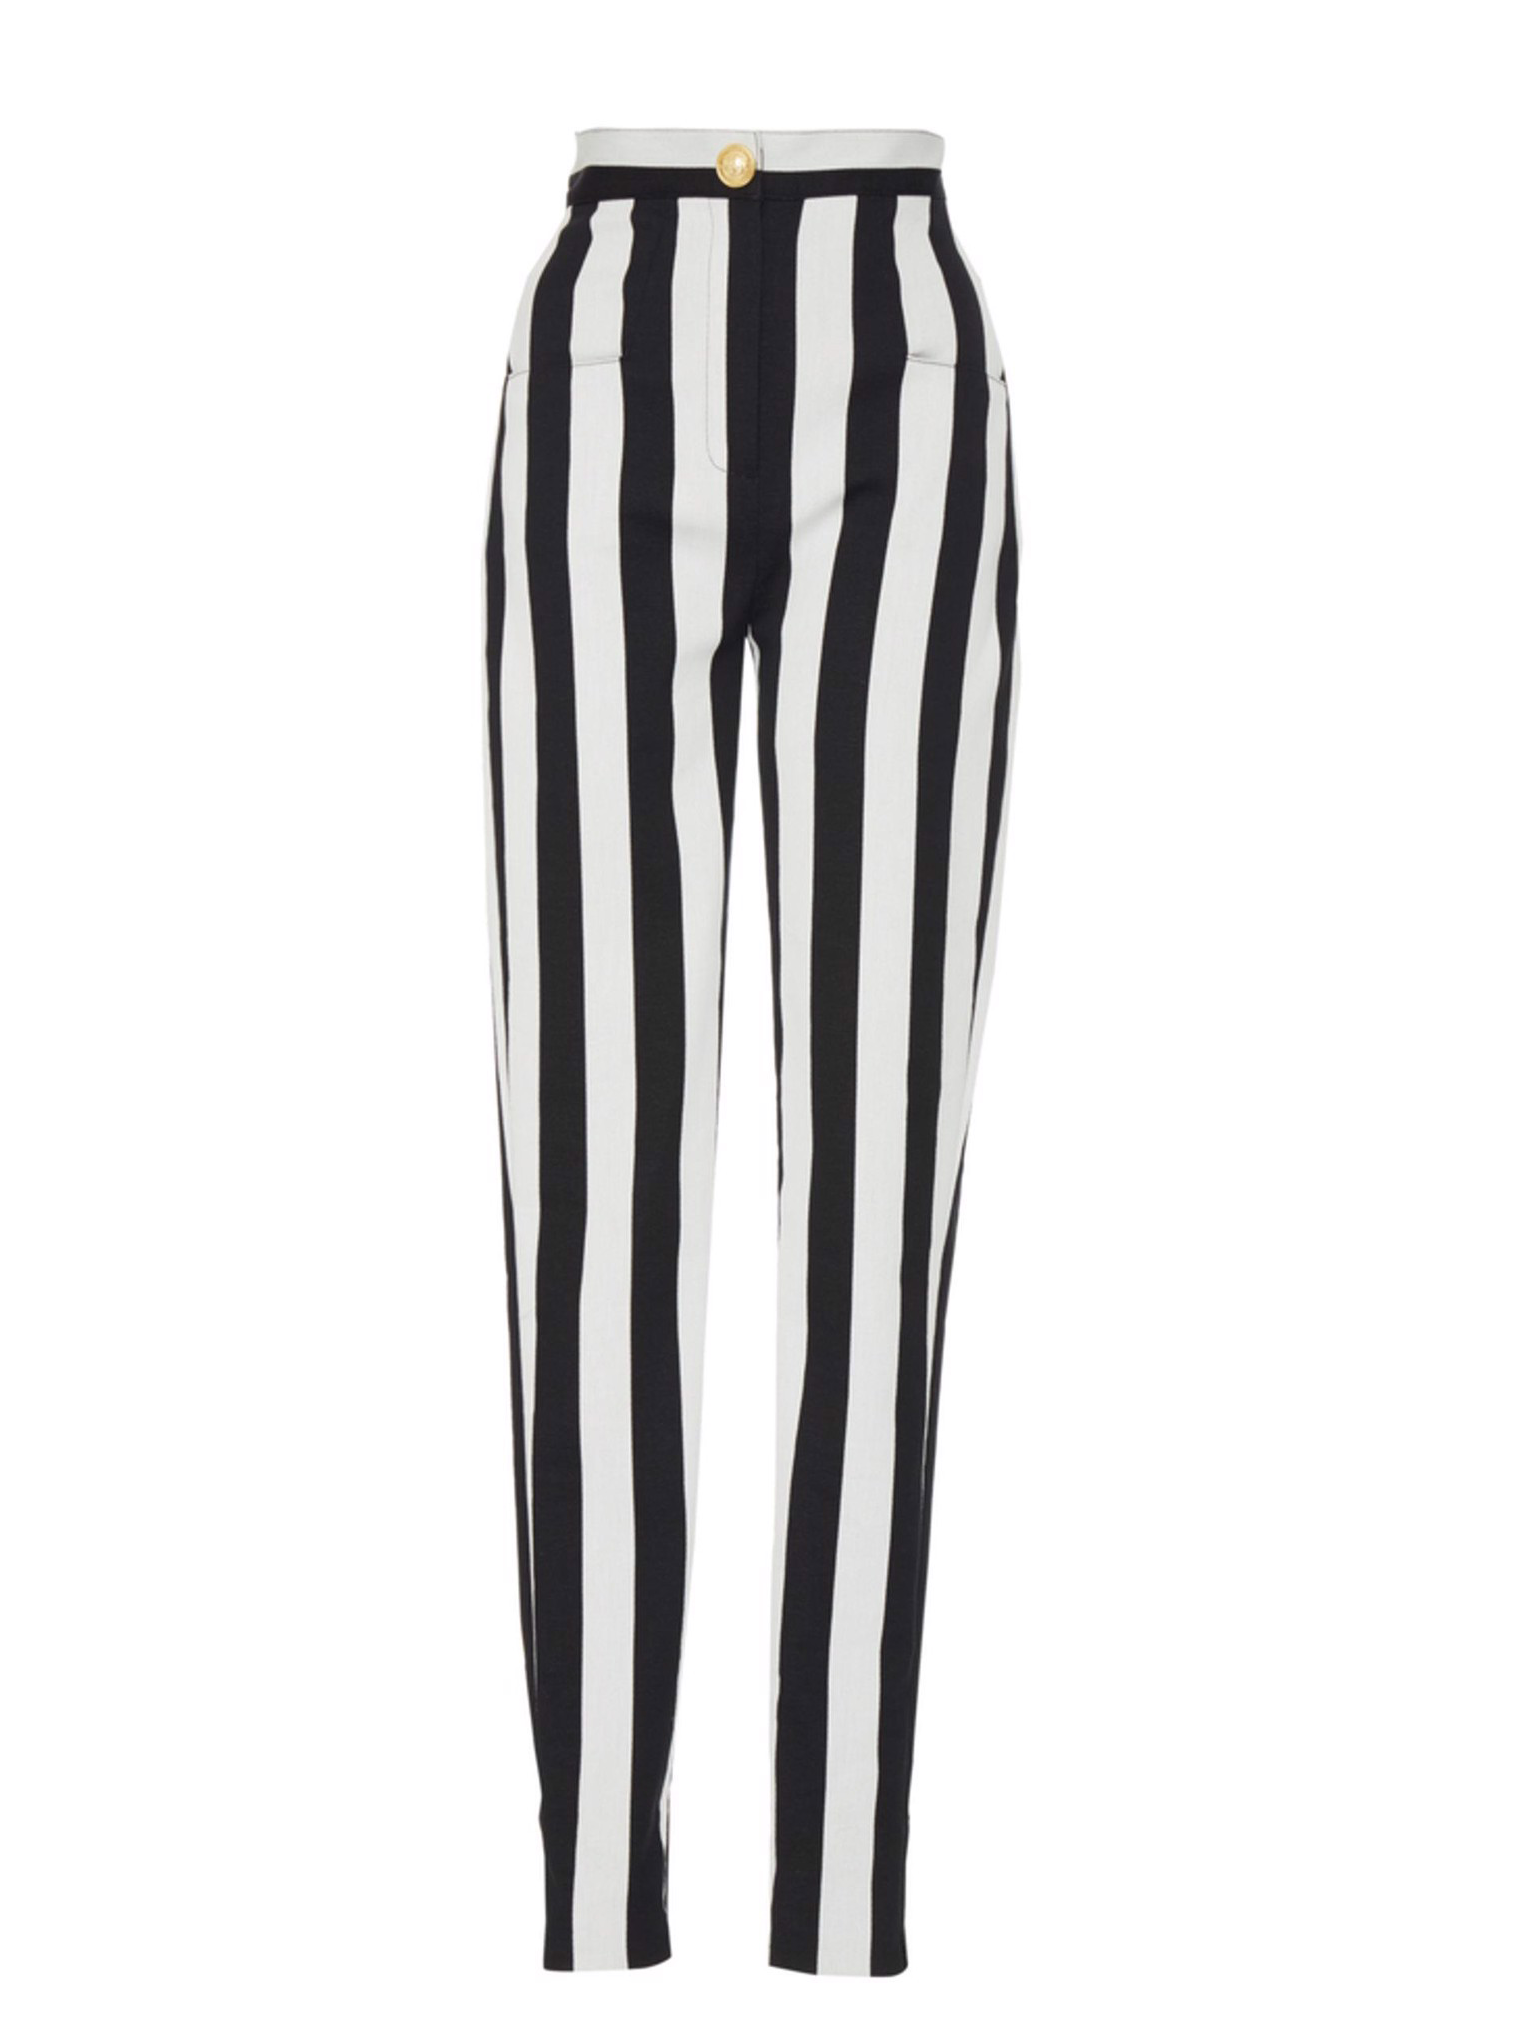 SLIM STRIPED PANTS